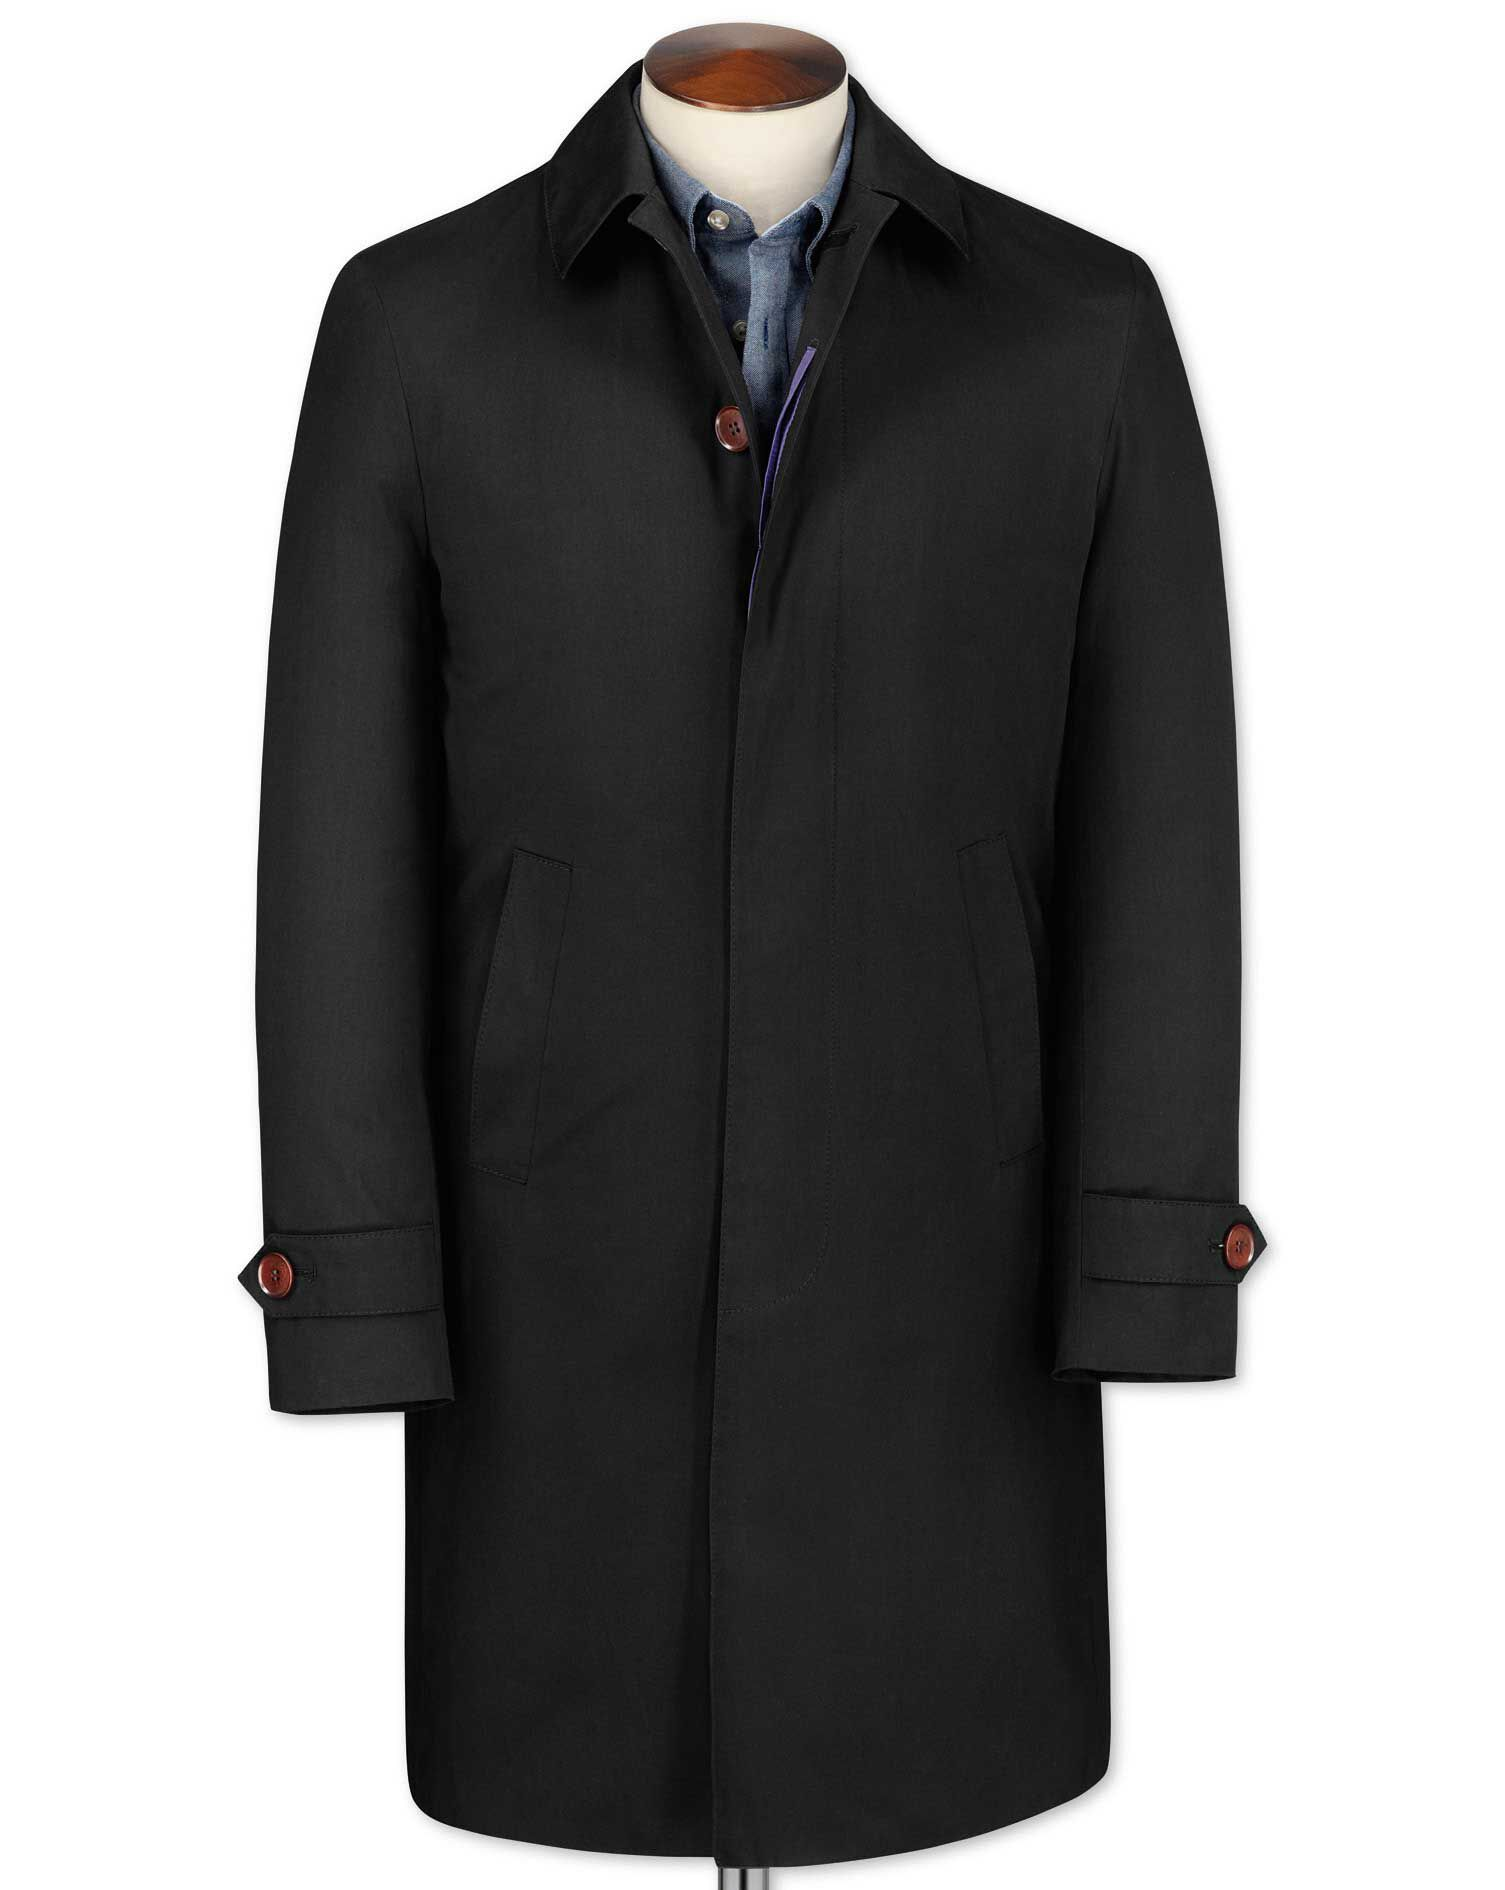 Classic Fit Black RainCotton coat Size 38 by Charles Tyrwhitt